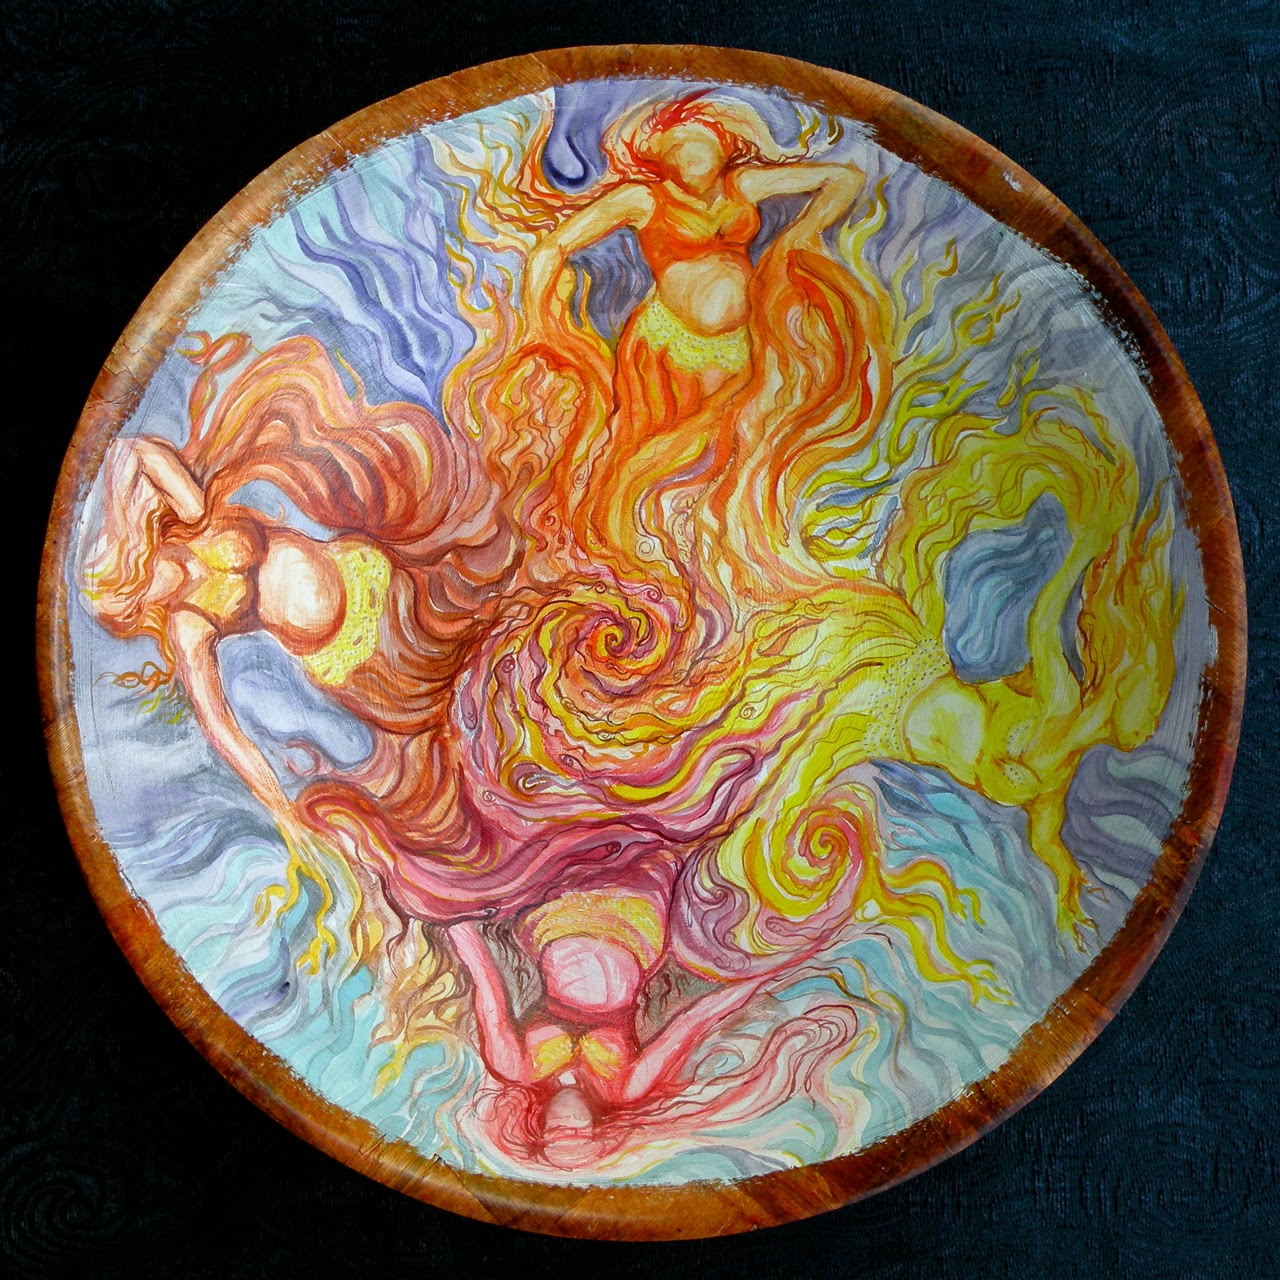 Manifesting, by Alica Wolter-Hausser. Wood, watercolour.